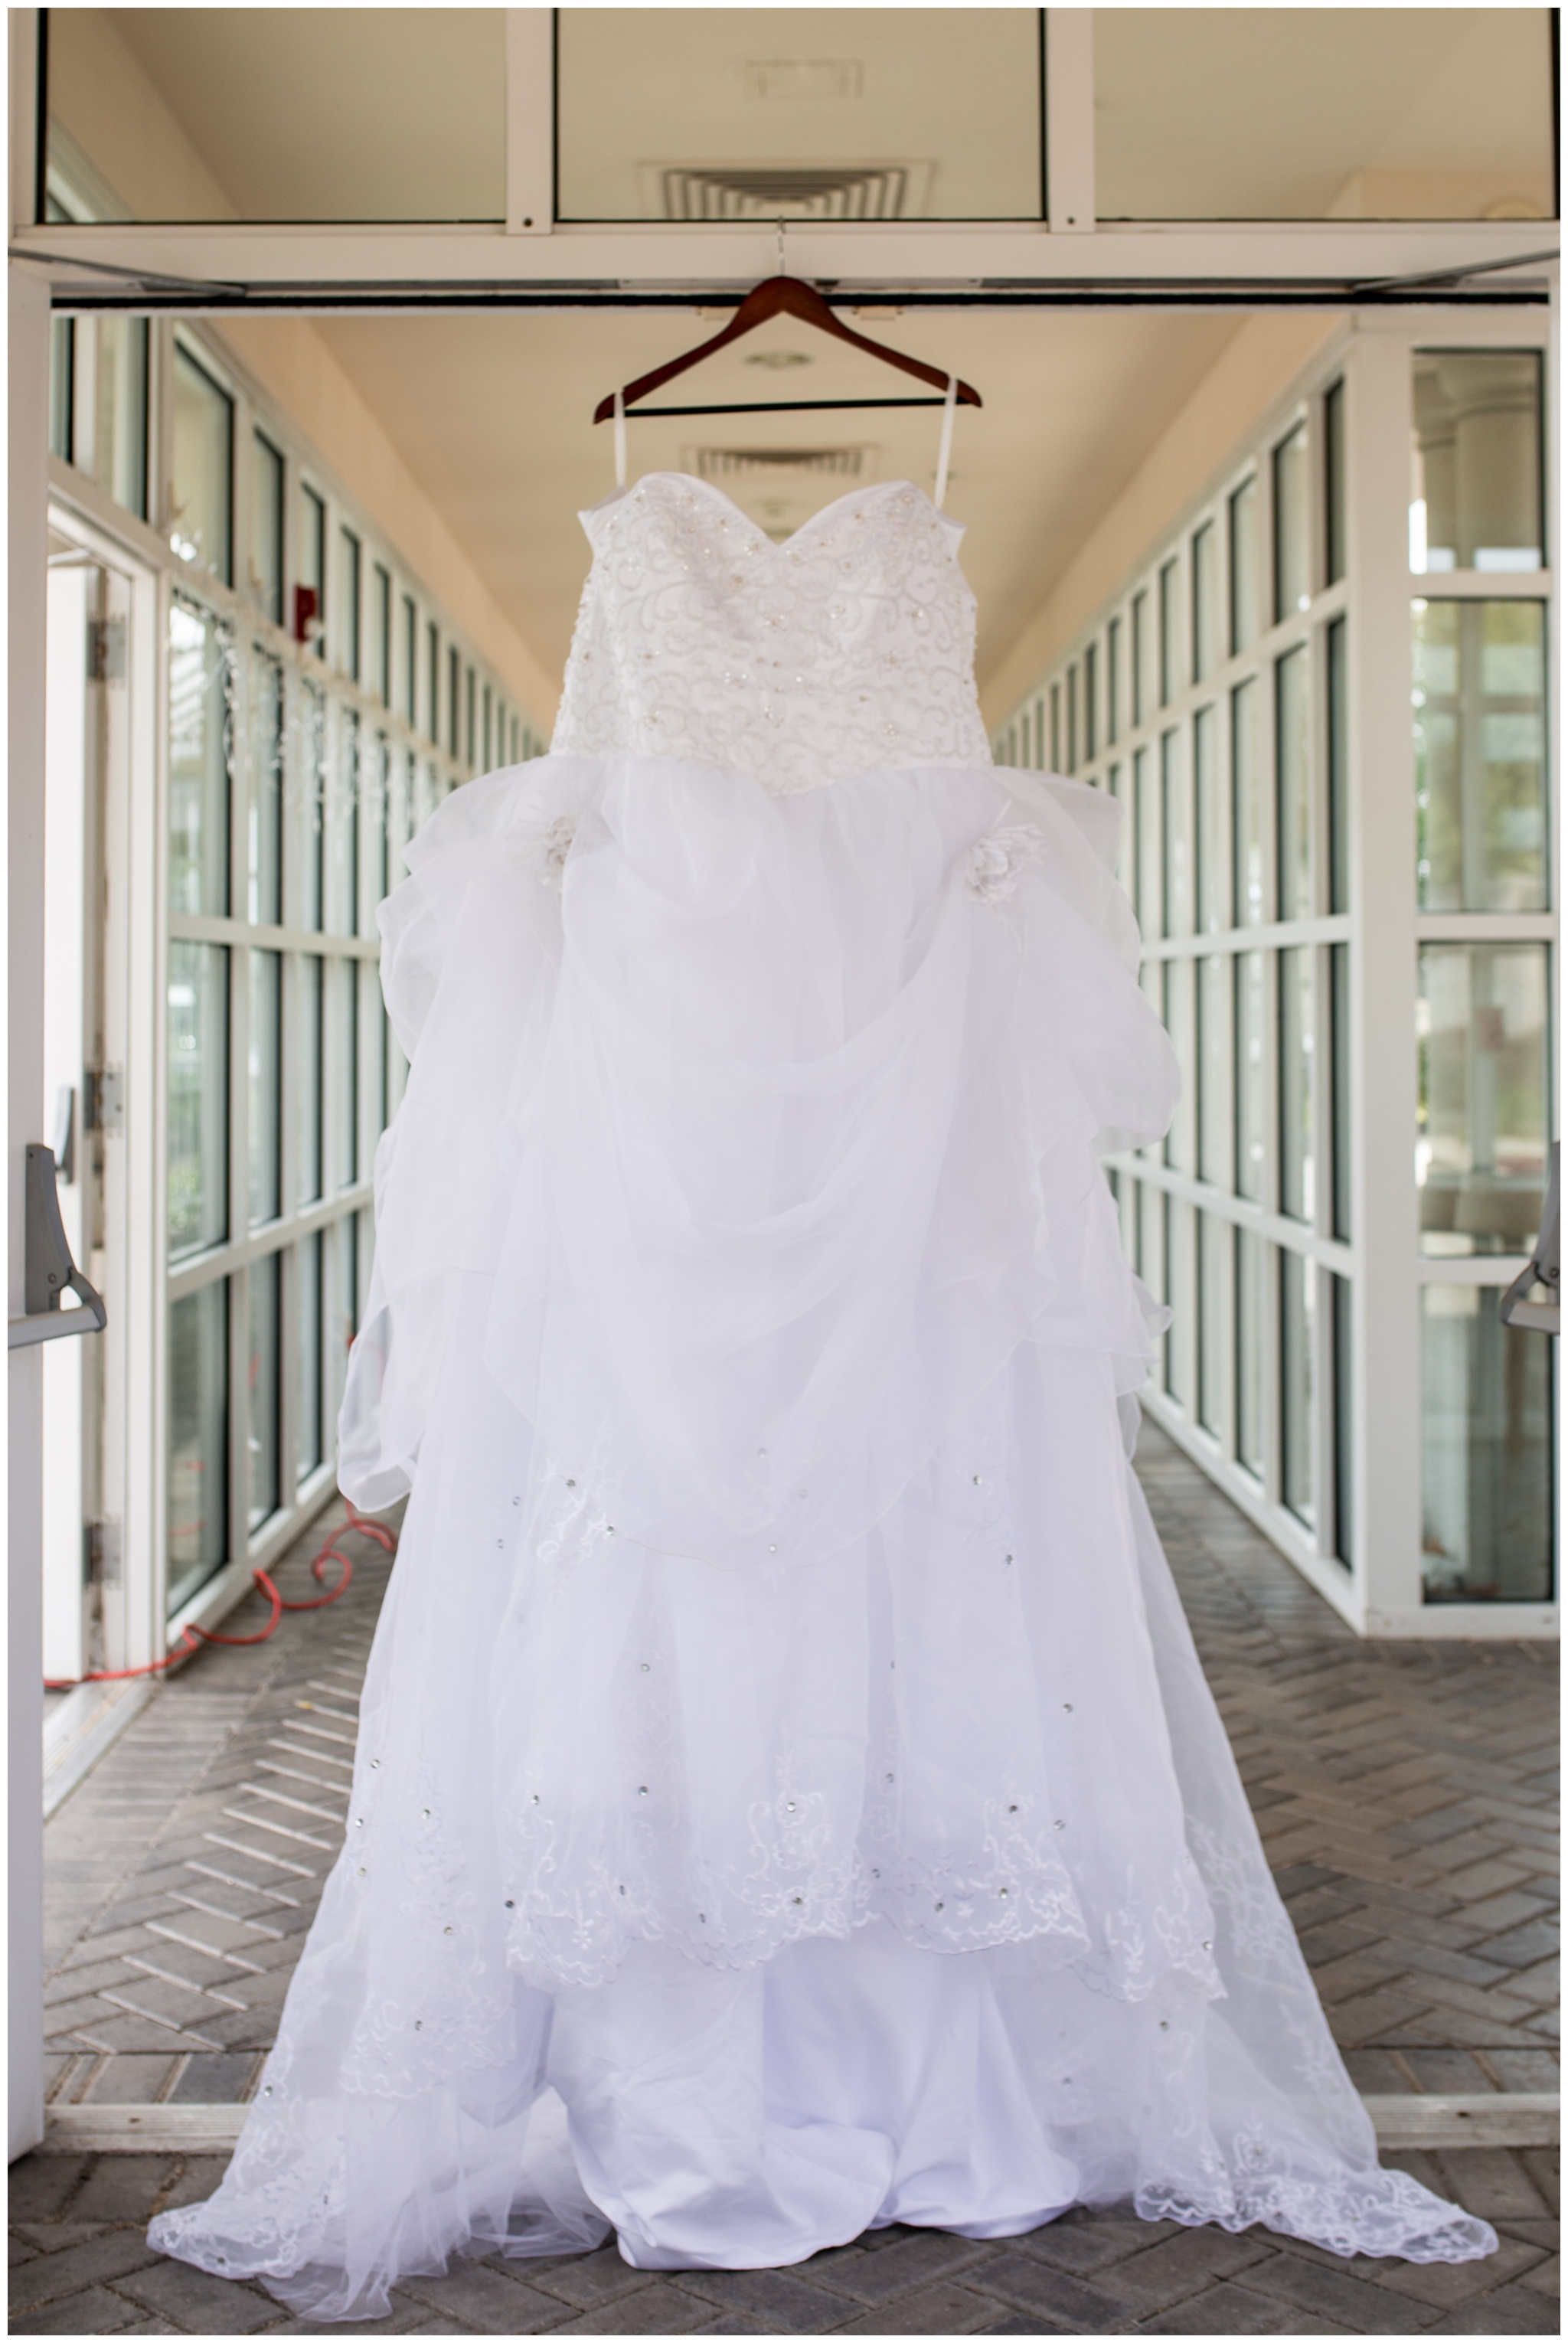 bride's dress hanging at Community Life Center in Indianapolis Indiana